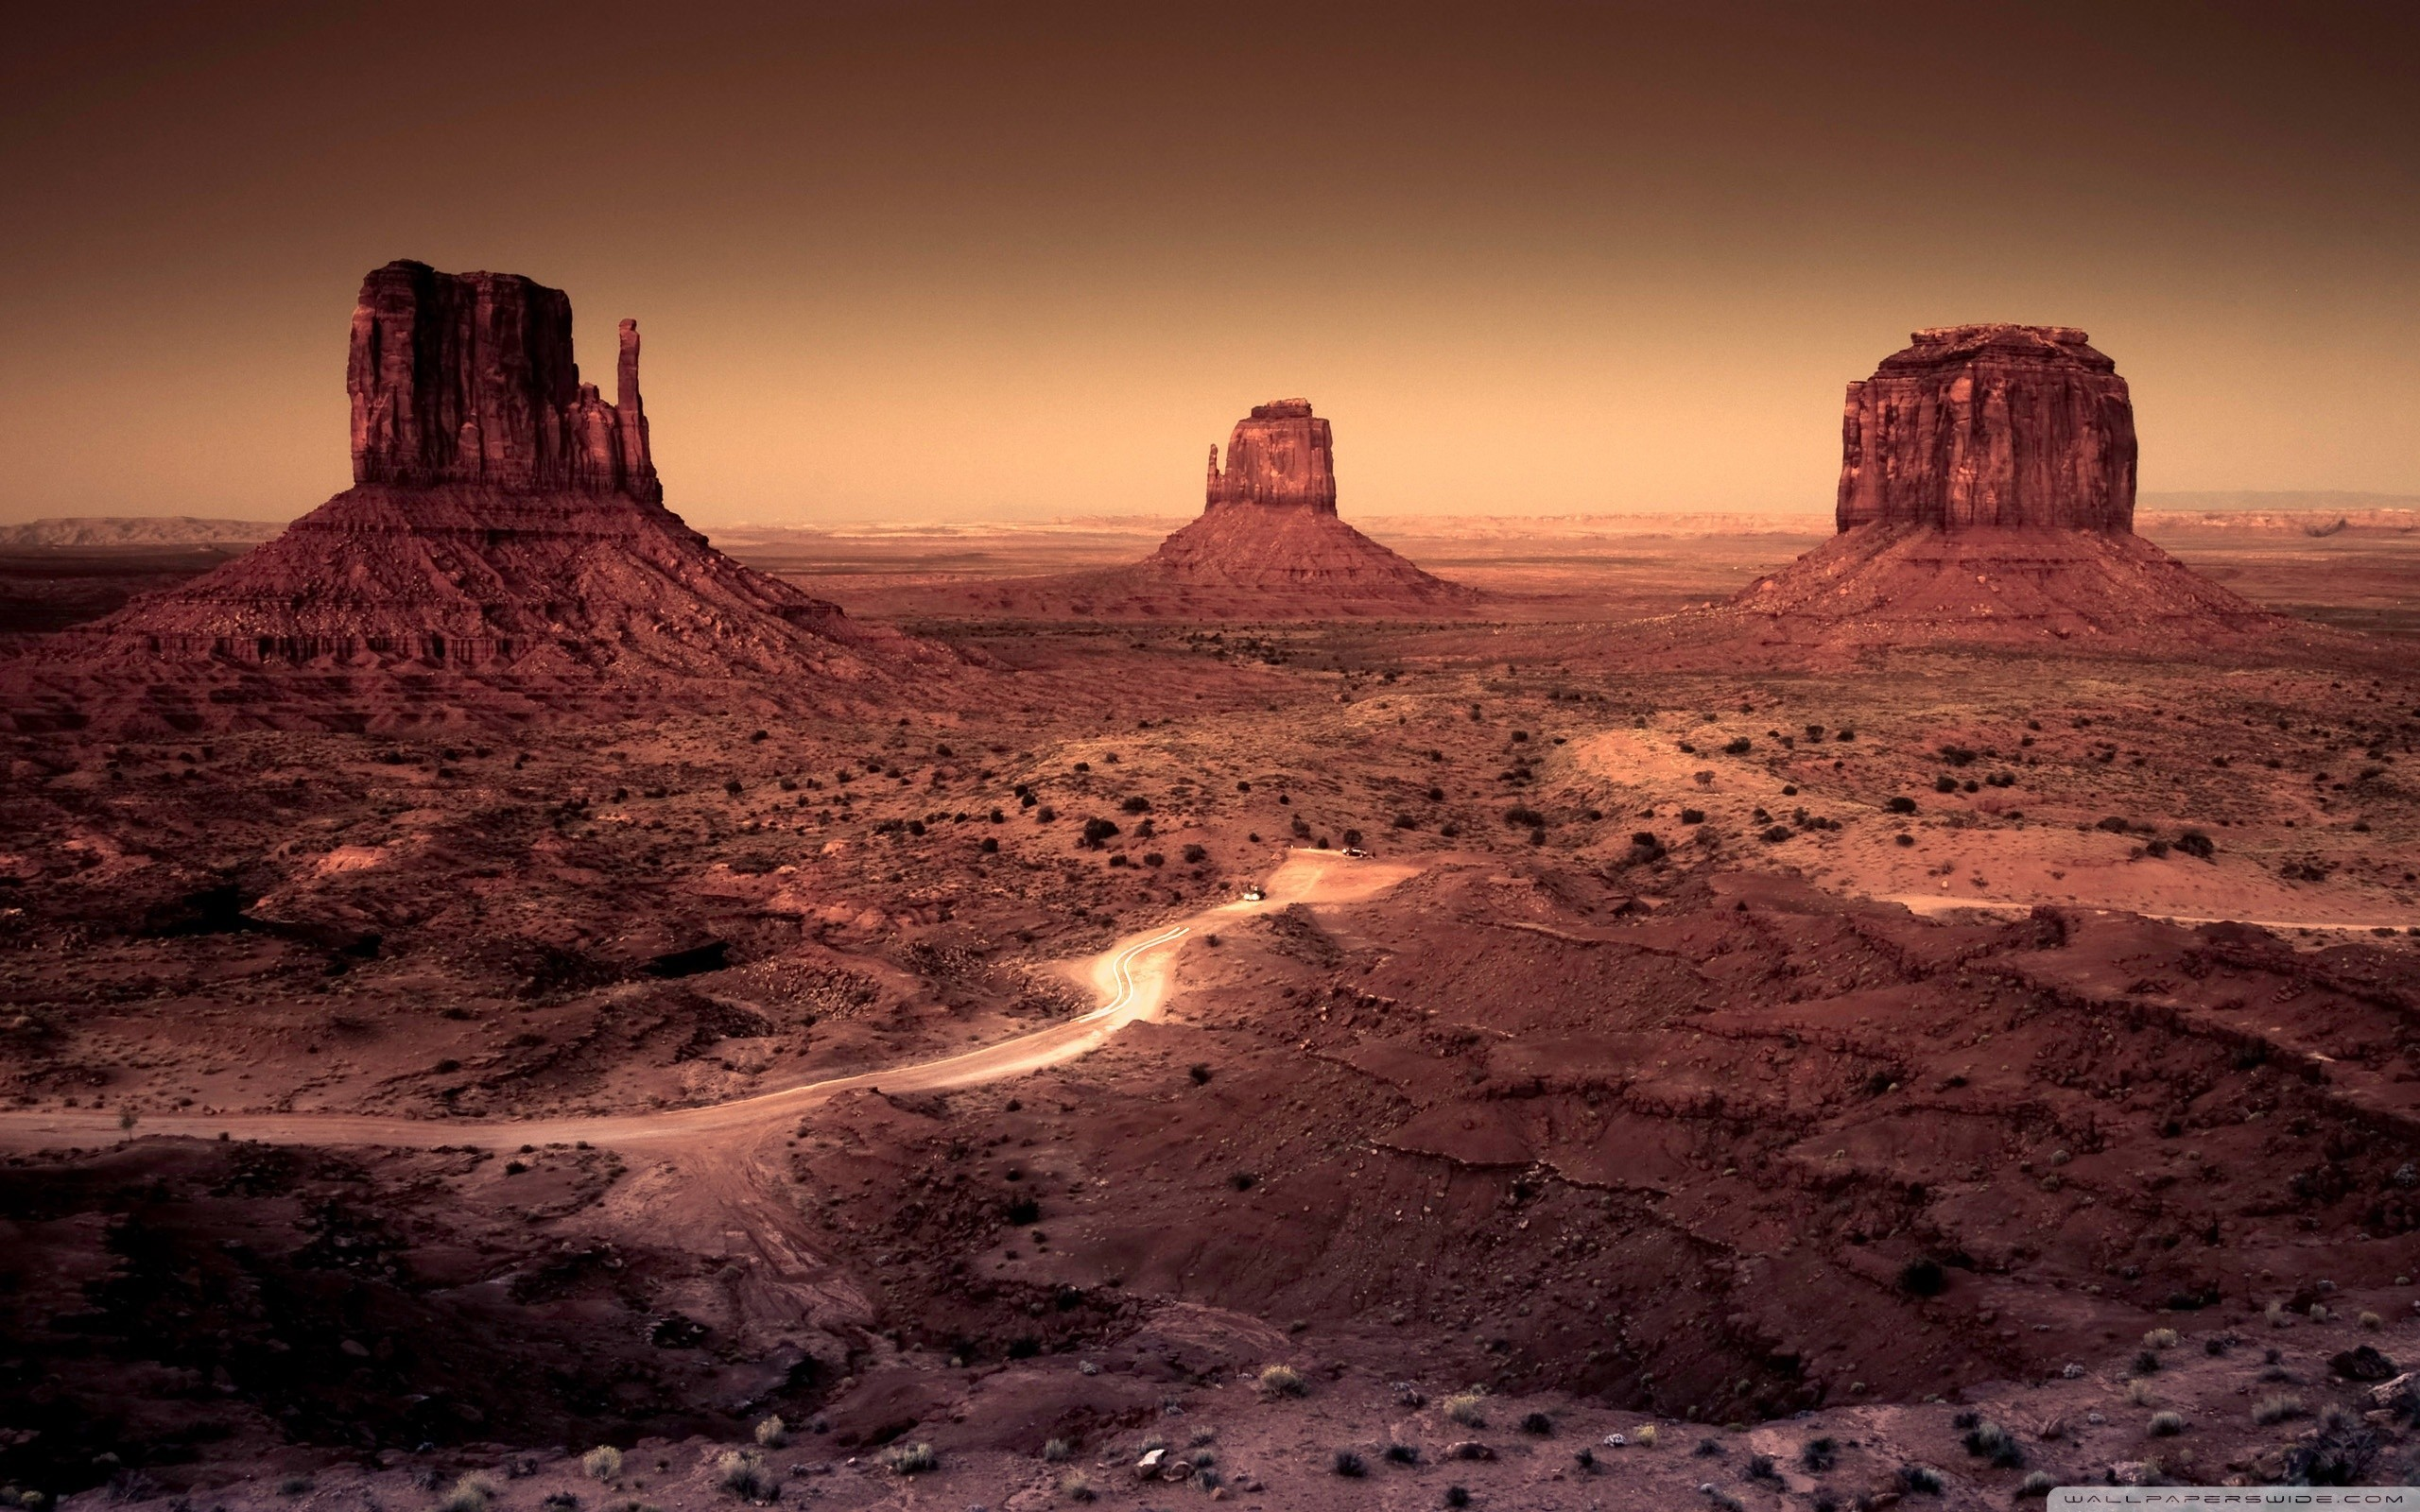 2560x1600 desert arizona monument valley rock formations wallpaper background .